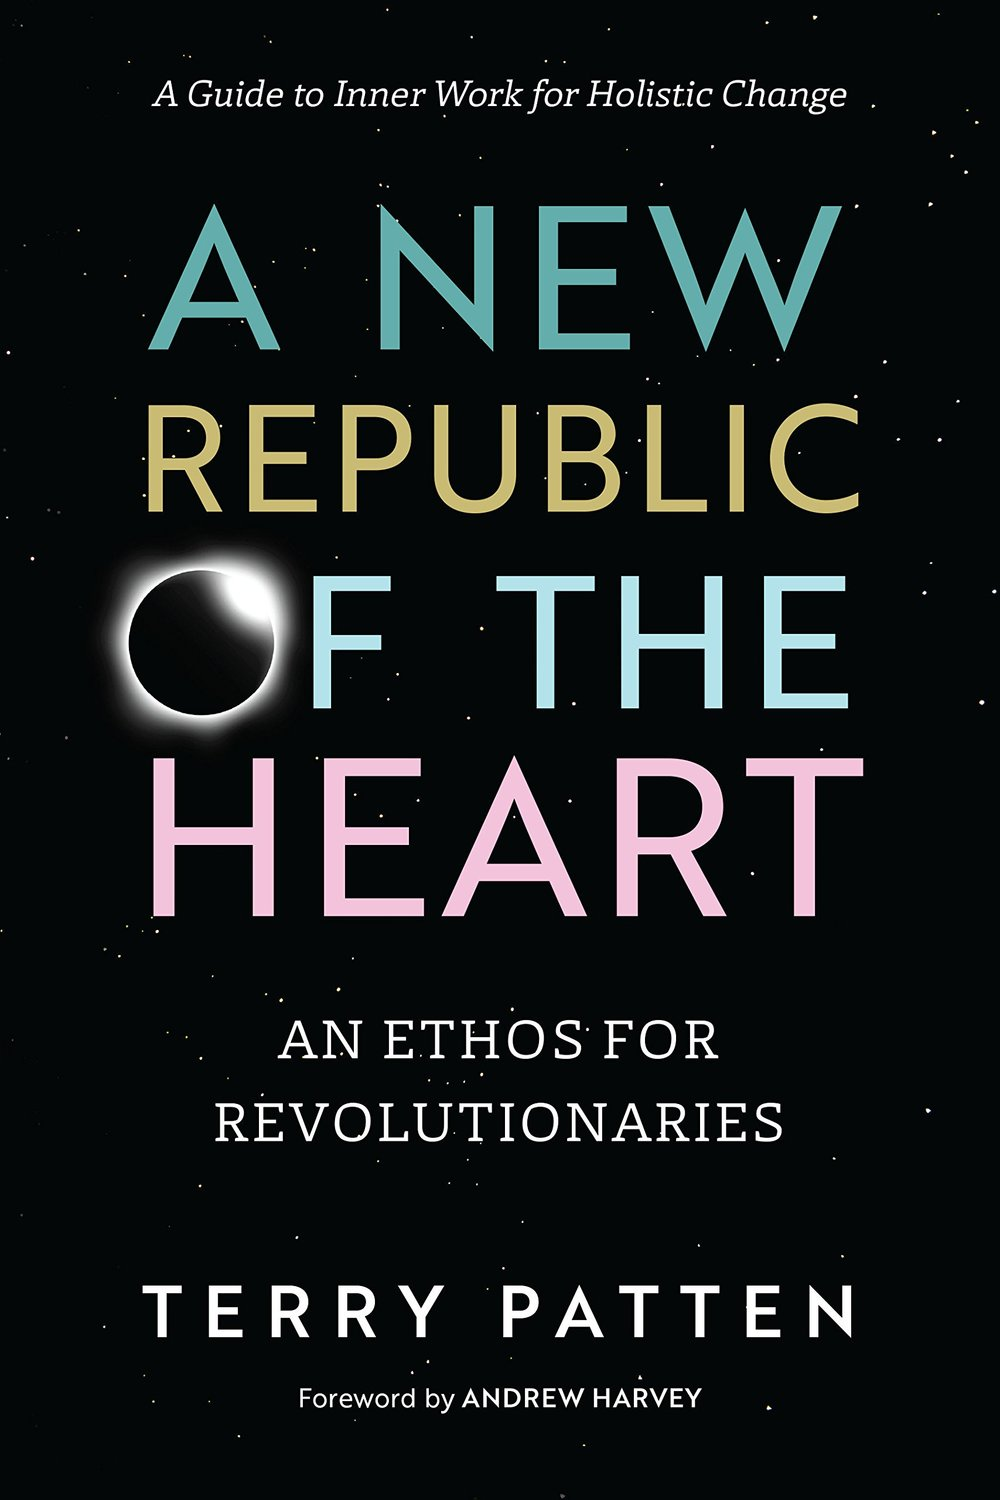 Book_A-New-Republic-of-the-Heart_cover.jpg